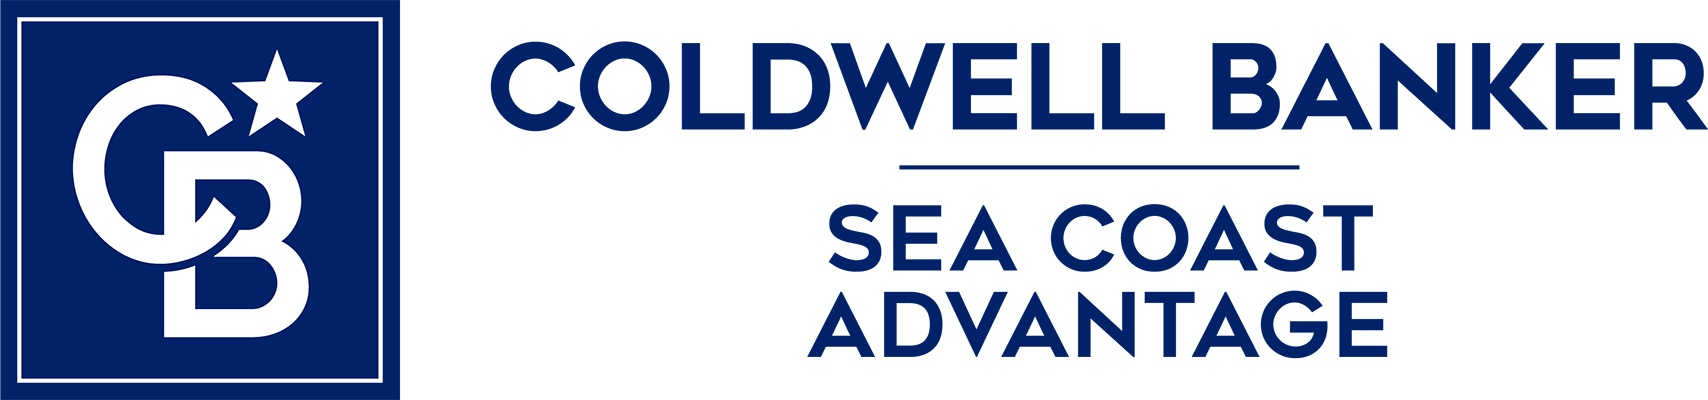 Jennie Stevens - Coldwell Banker Sea Coast Advantage Realty